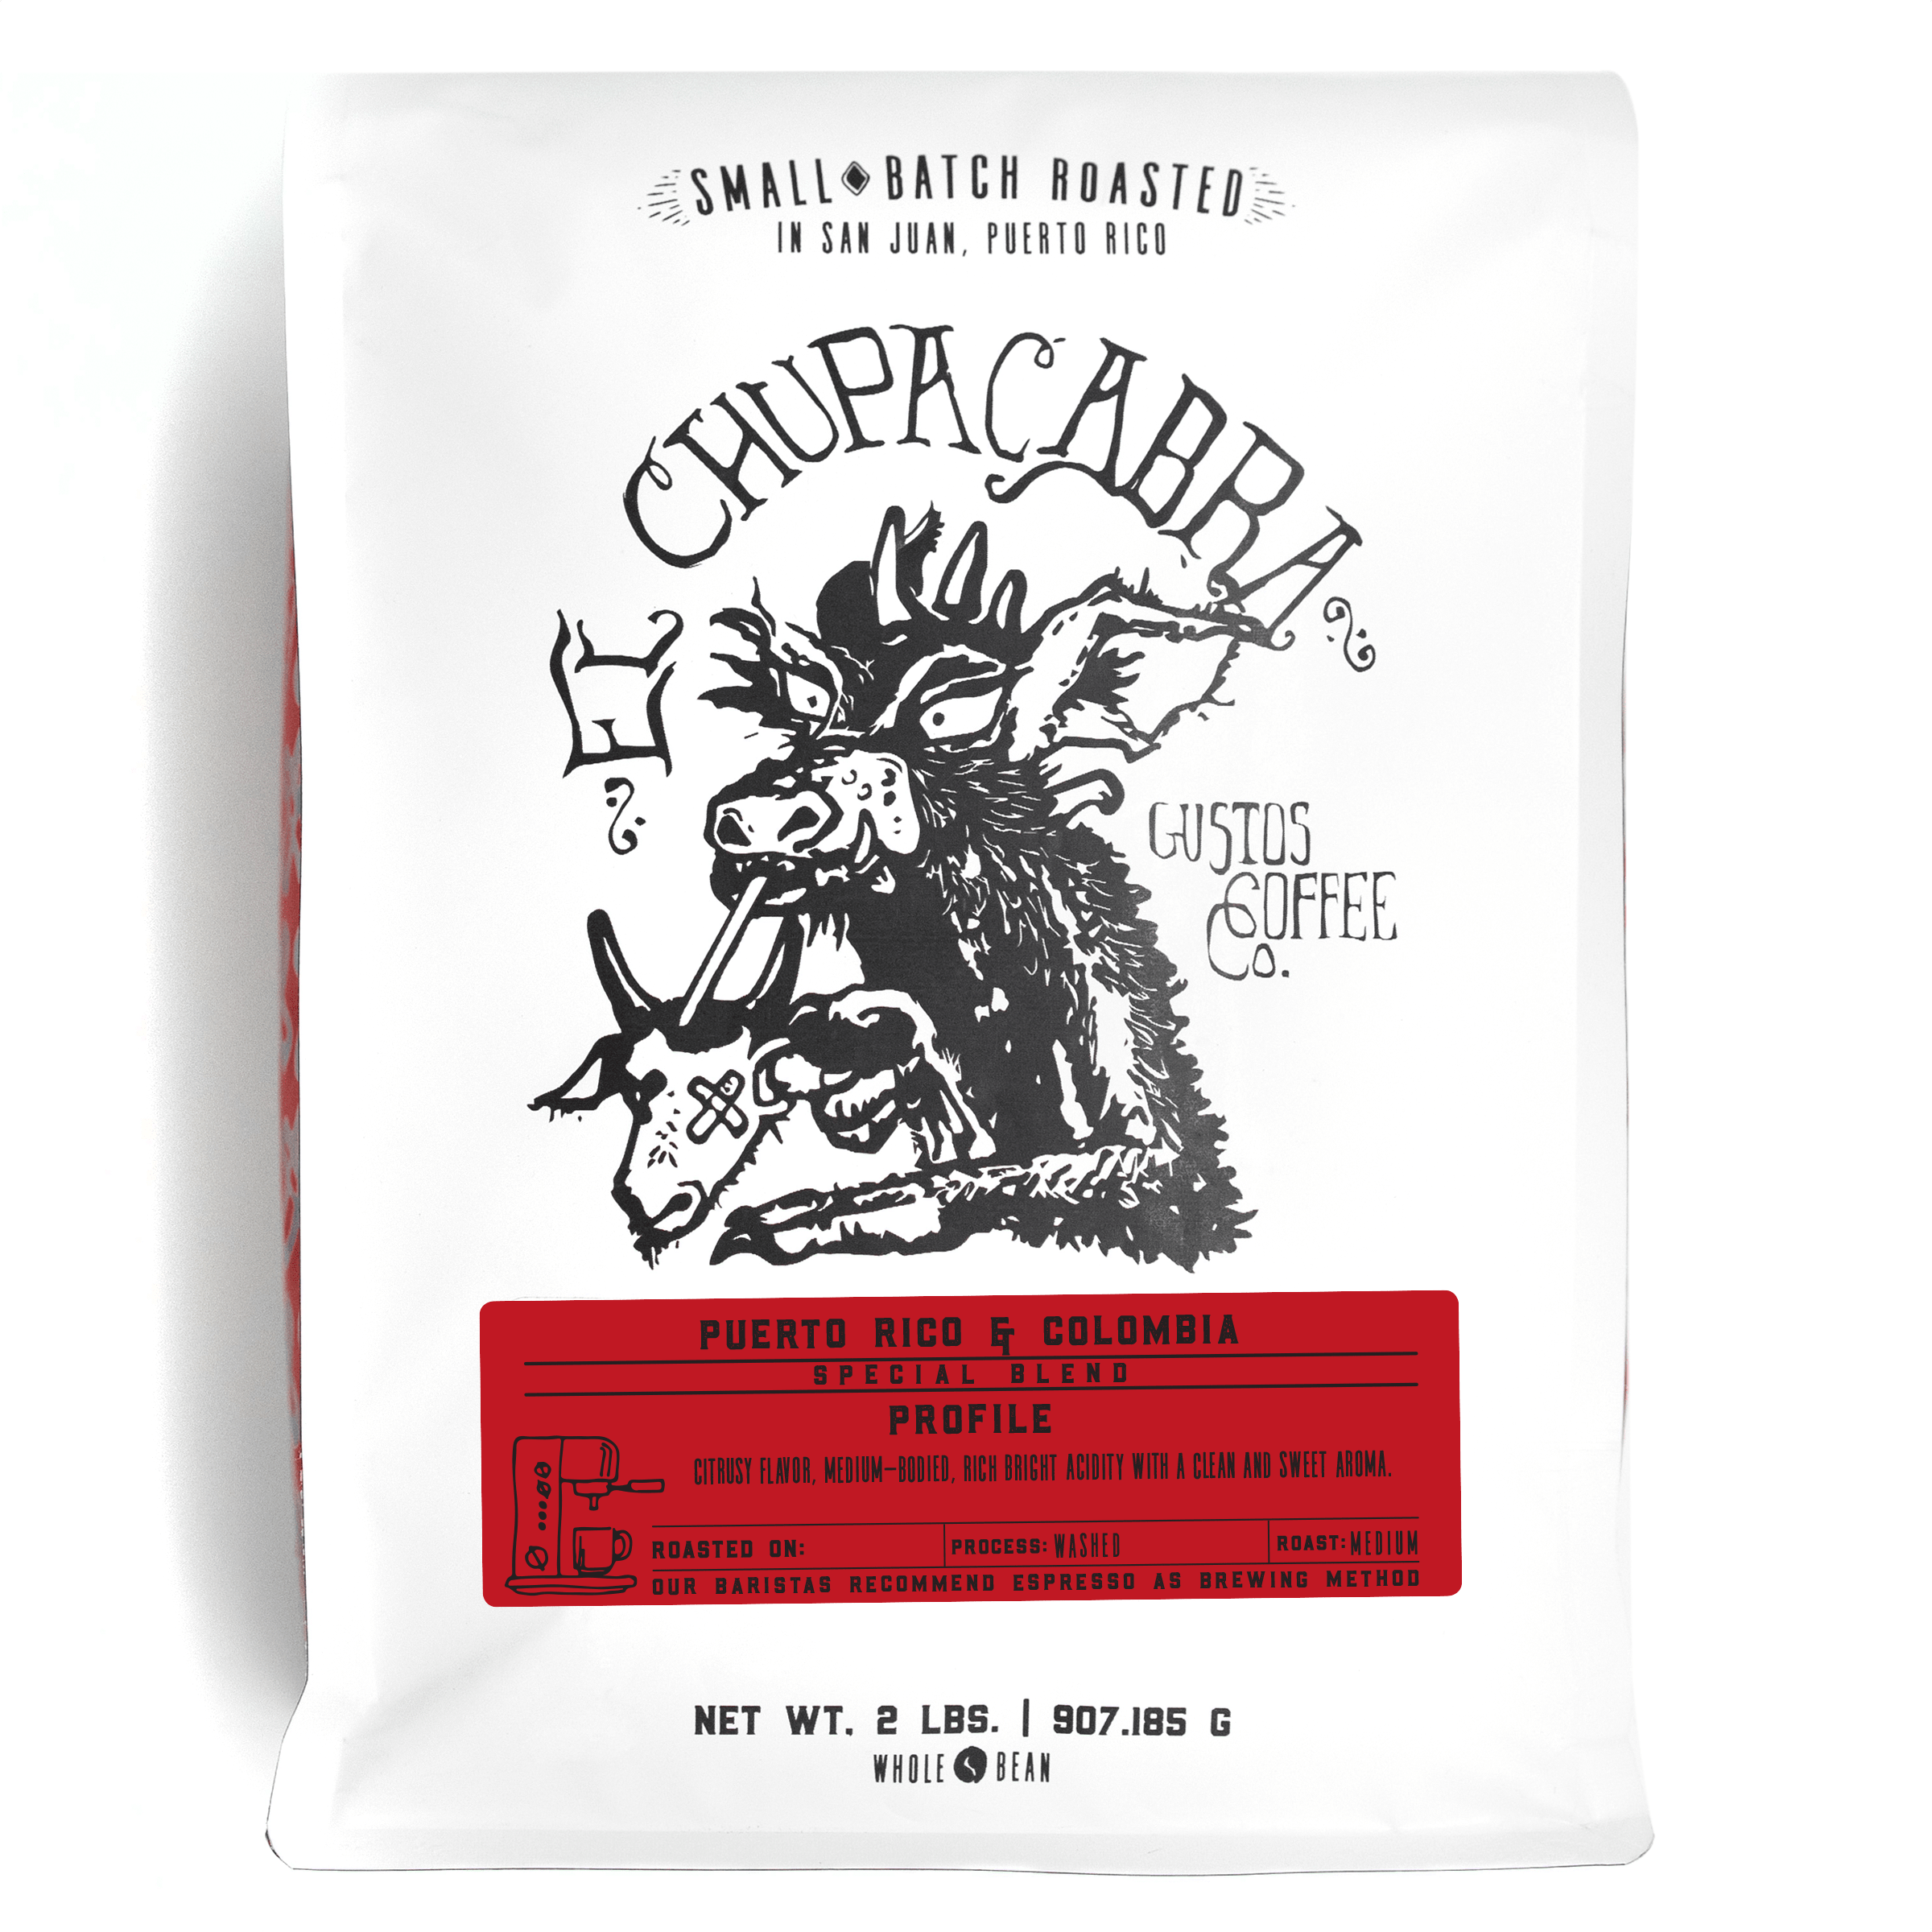 El Chupacabra Specialty Coffee Blend Yauco Puerto Rico x Colombia Gustos Coffee Co